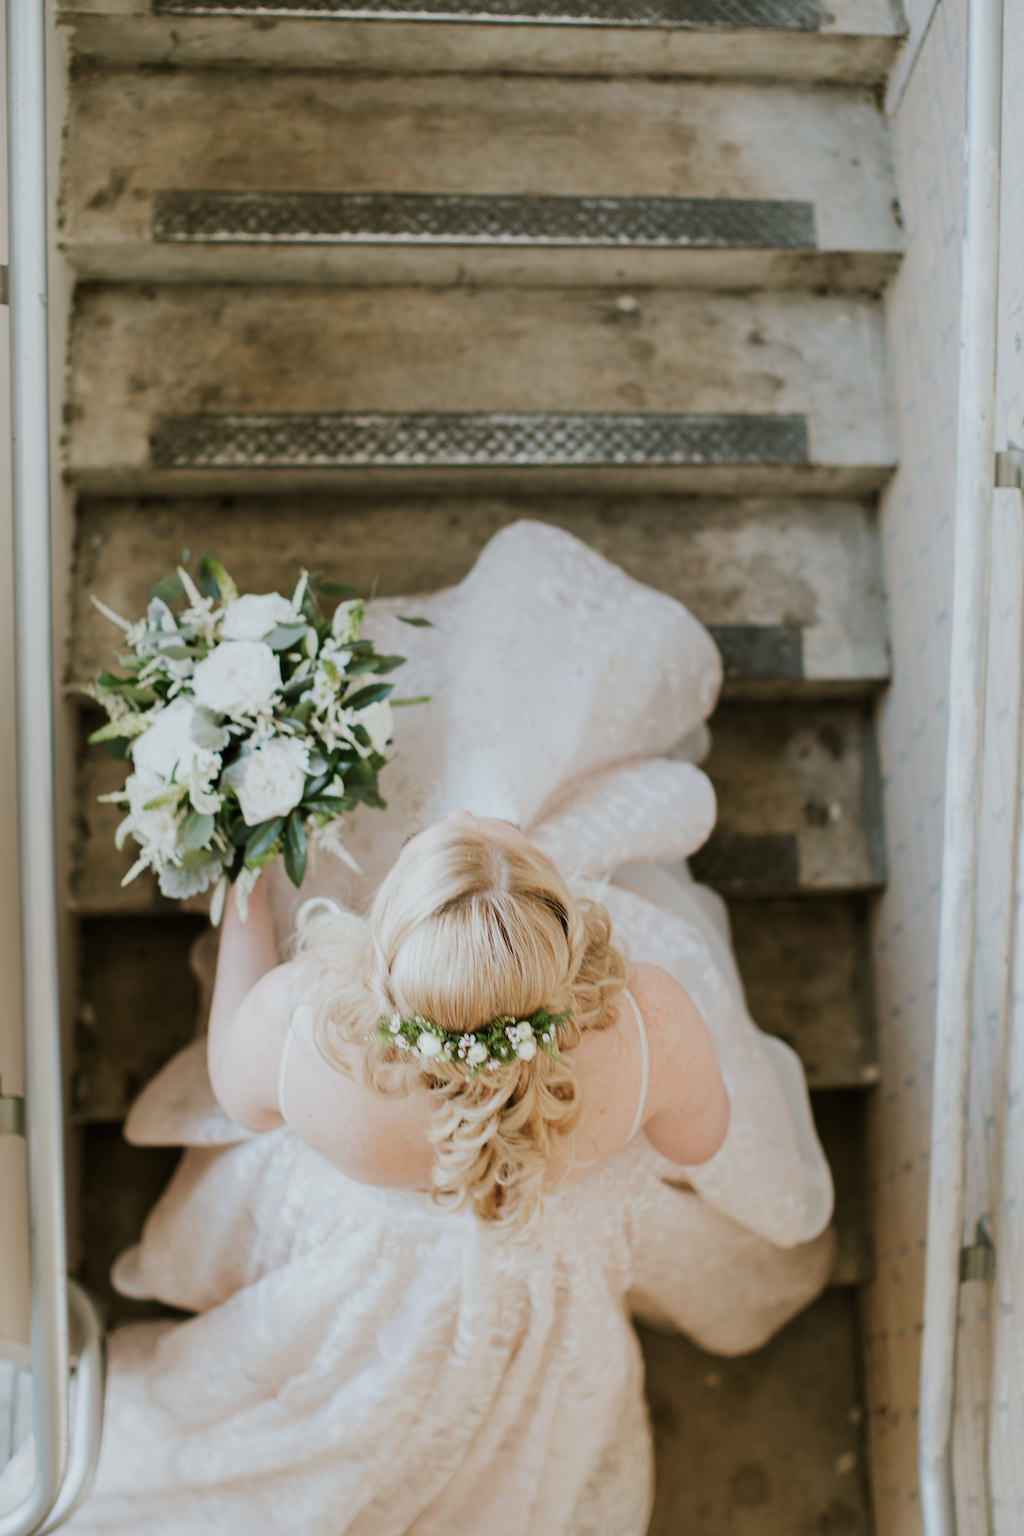 Creative Florida Bride Going Up the Stairs From Above Wedding Portrait Holding Organic Greenery and Ivory Floral Bridal Bouquet, Greenery Floral Hairpiece and Half Updo